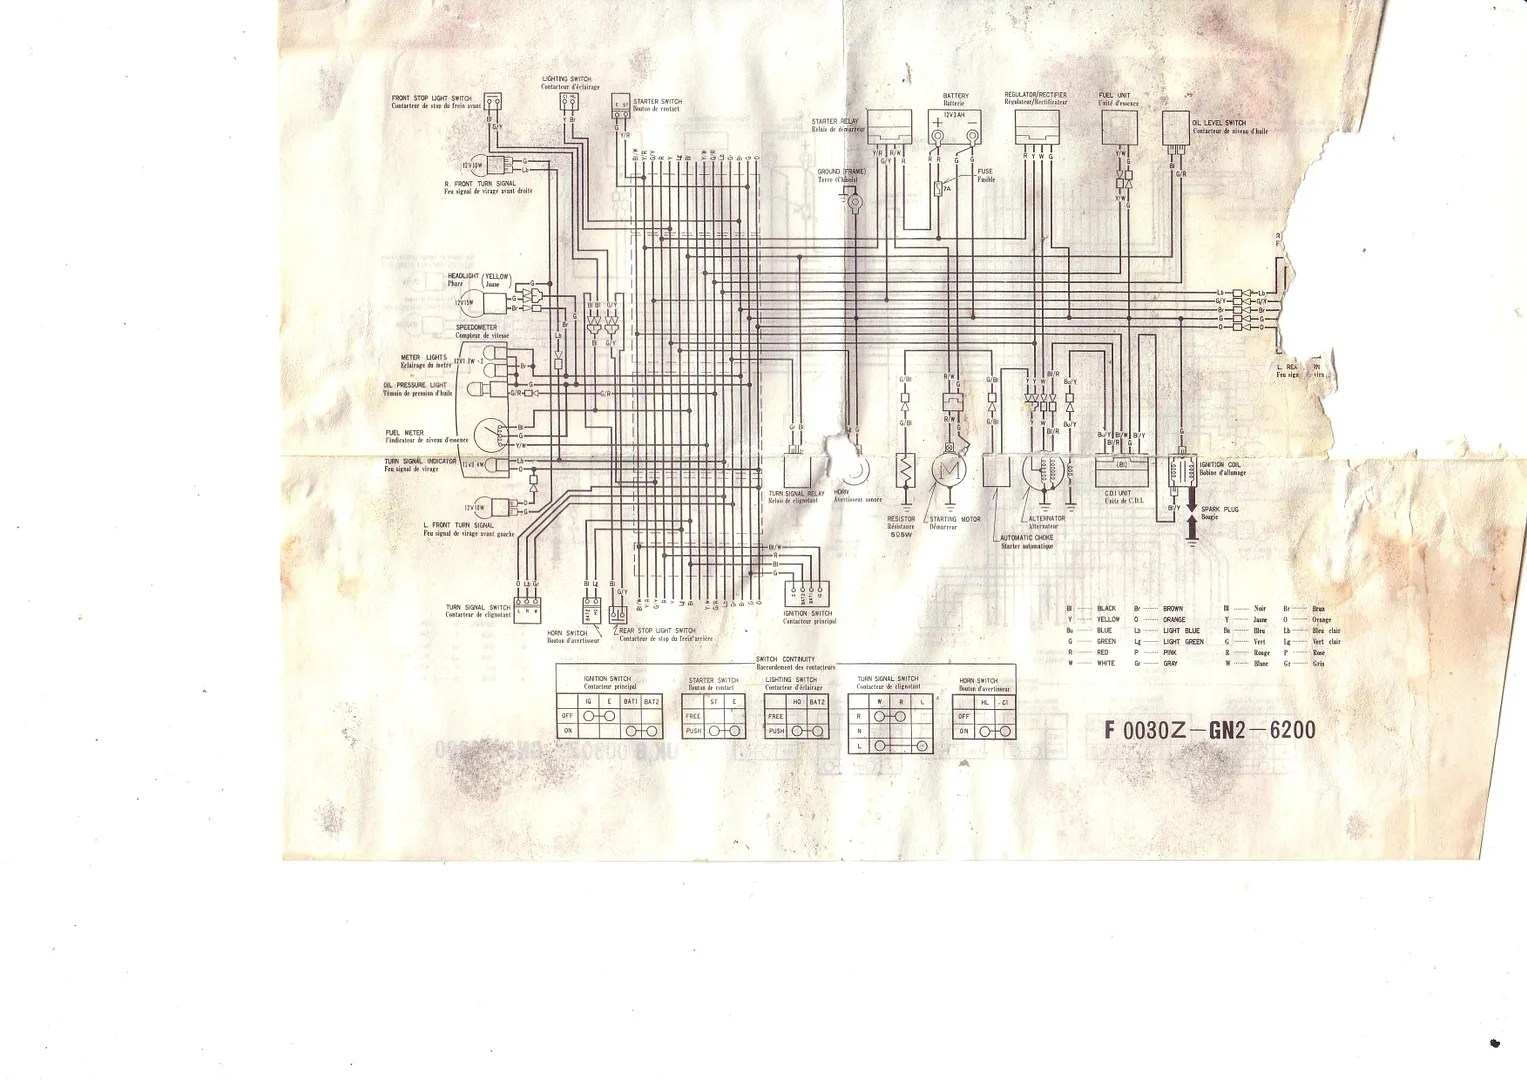 1986 Honda Spree Wiring Diagram Oil Light Test At Power On Honda Spree And Elite 50 Forums